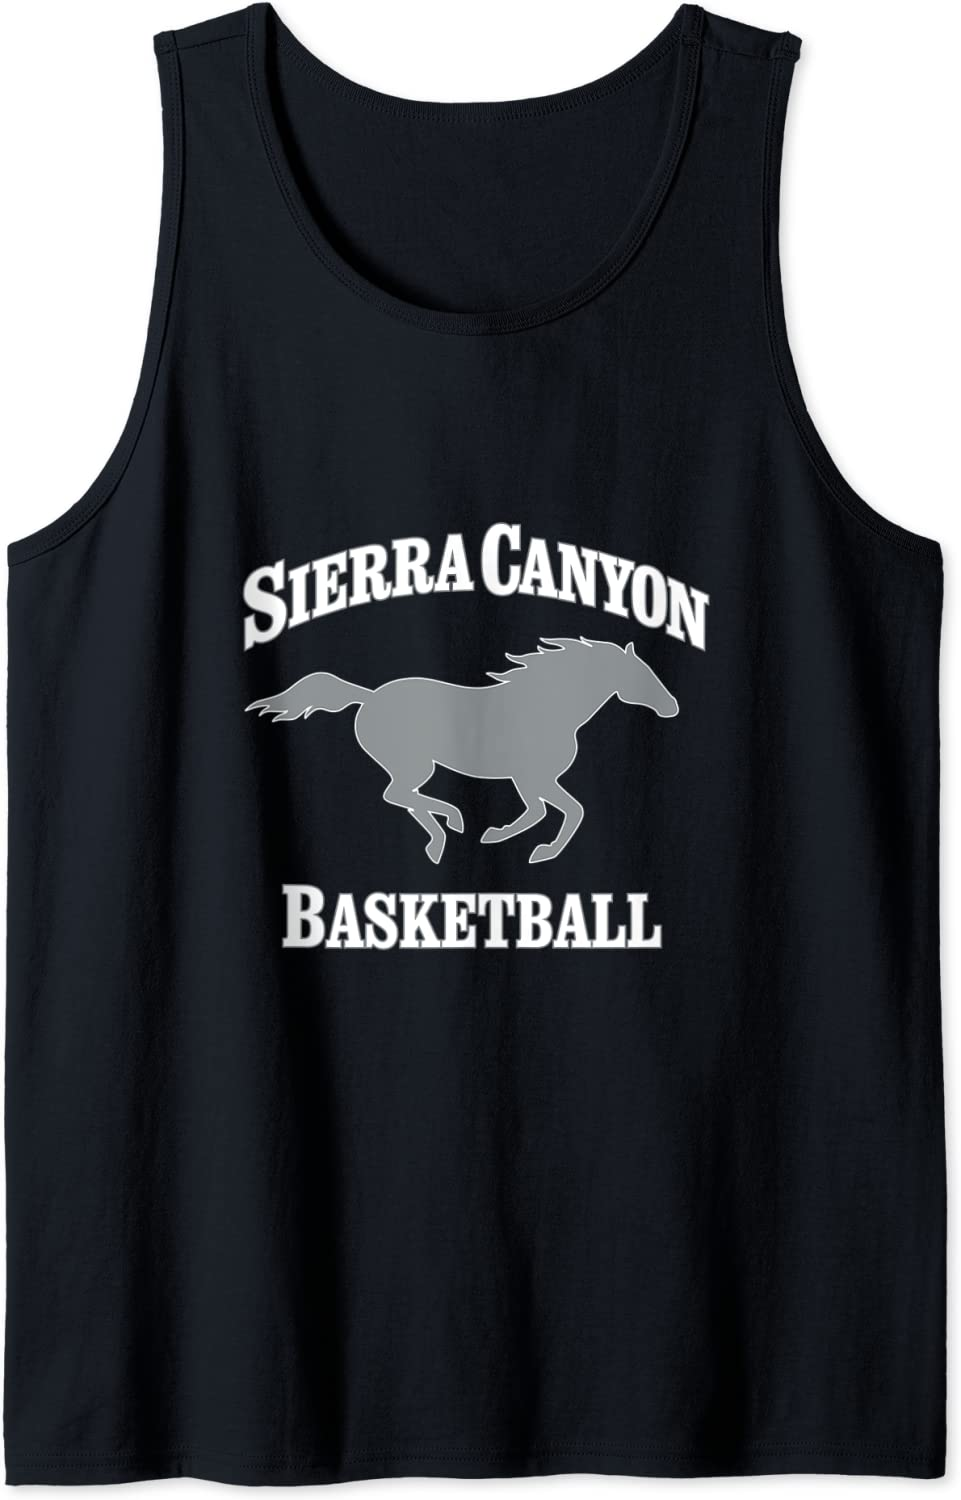 Sierra Canyon Basketball Max 63% OFF with Ranking TOP7 Tank Top Horse